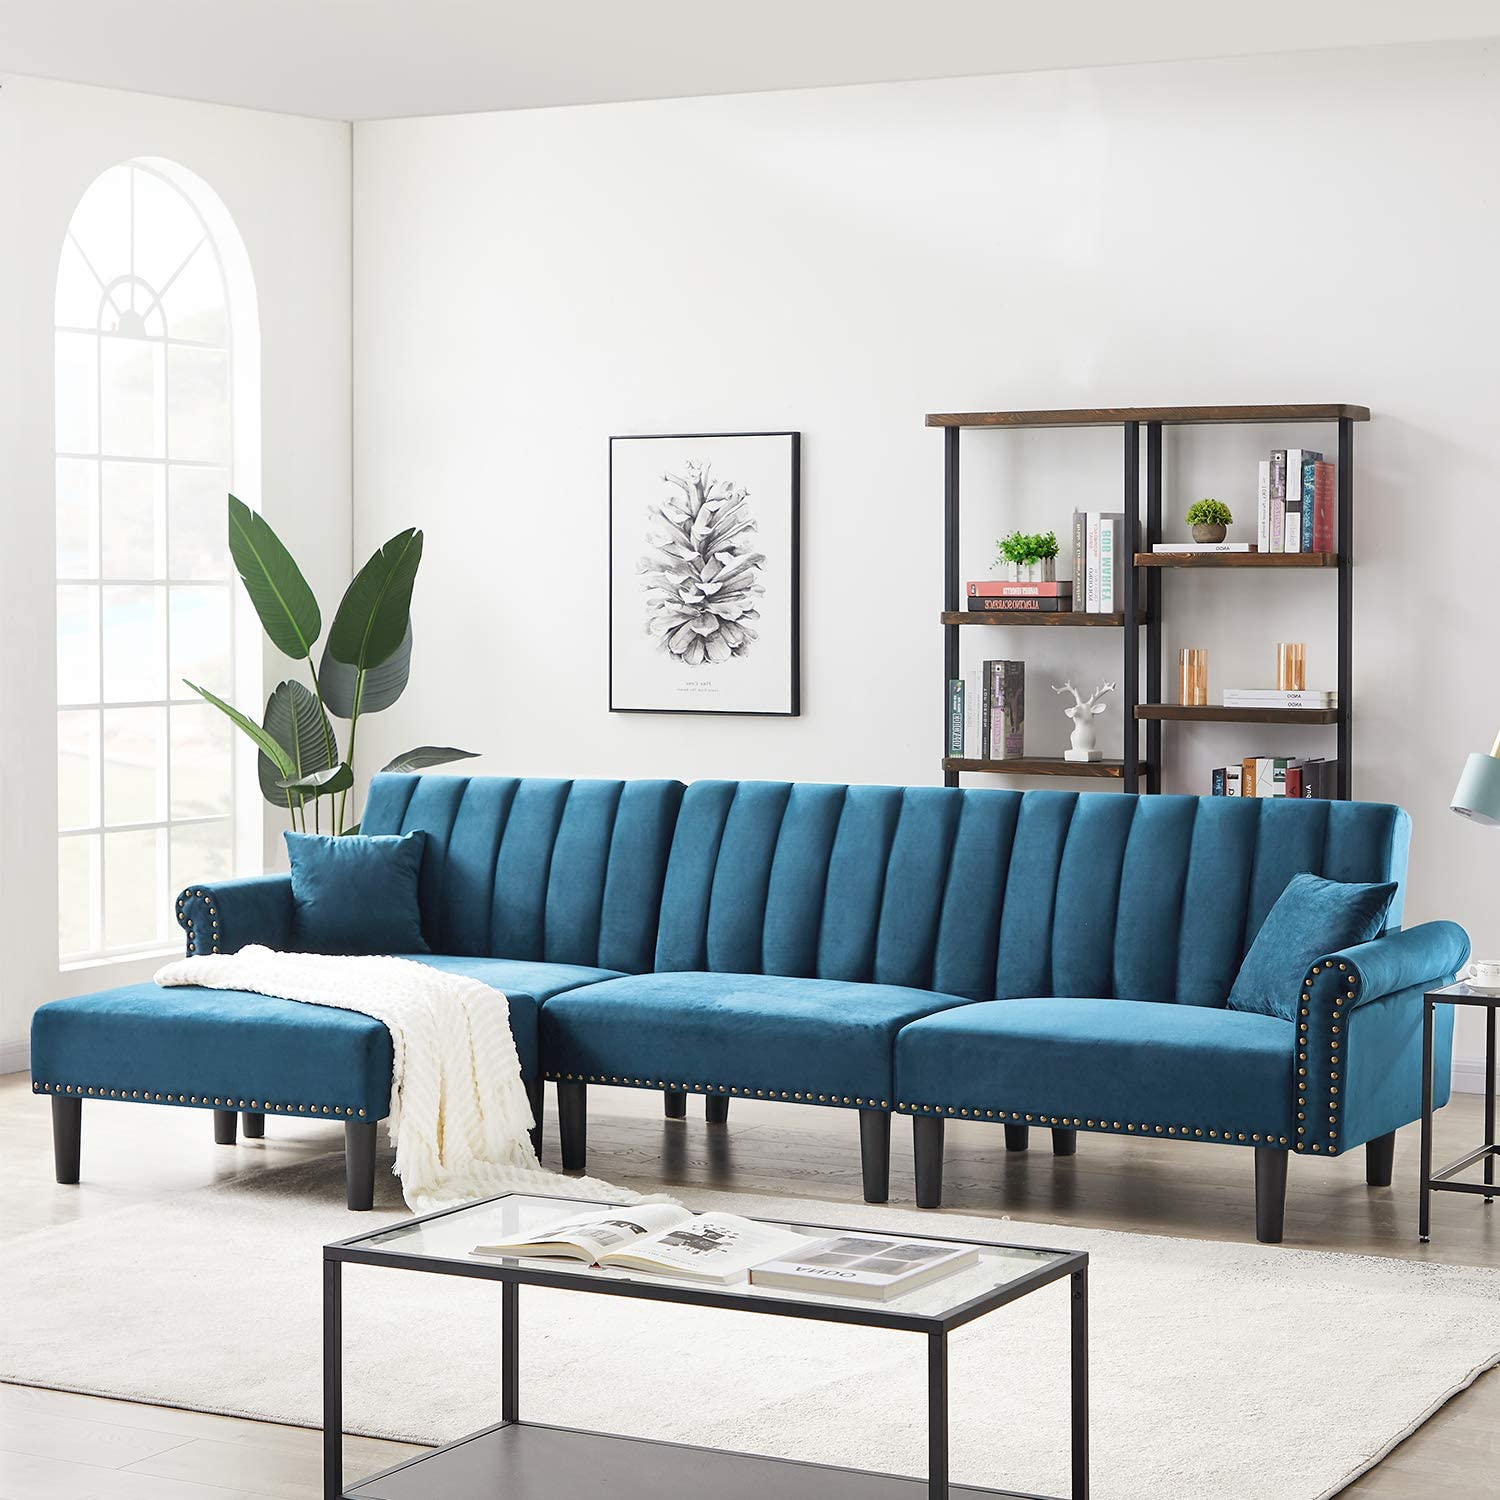 Suwikeke Modern Velvet Fabric Convertible Sectional Bed Rivet L-Shape Extra Wide Chaise Lounge Contracted Living Room Furniture Set with 2 Pillows & 3 Angles Adjustable, 4-Seat Sofas, Lake Blue